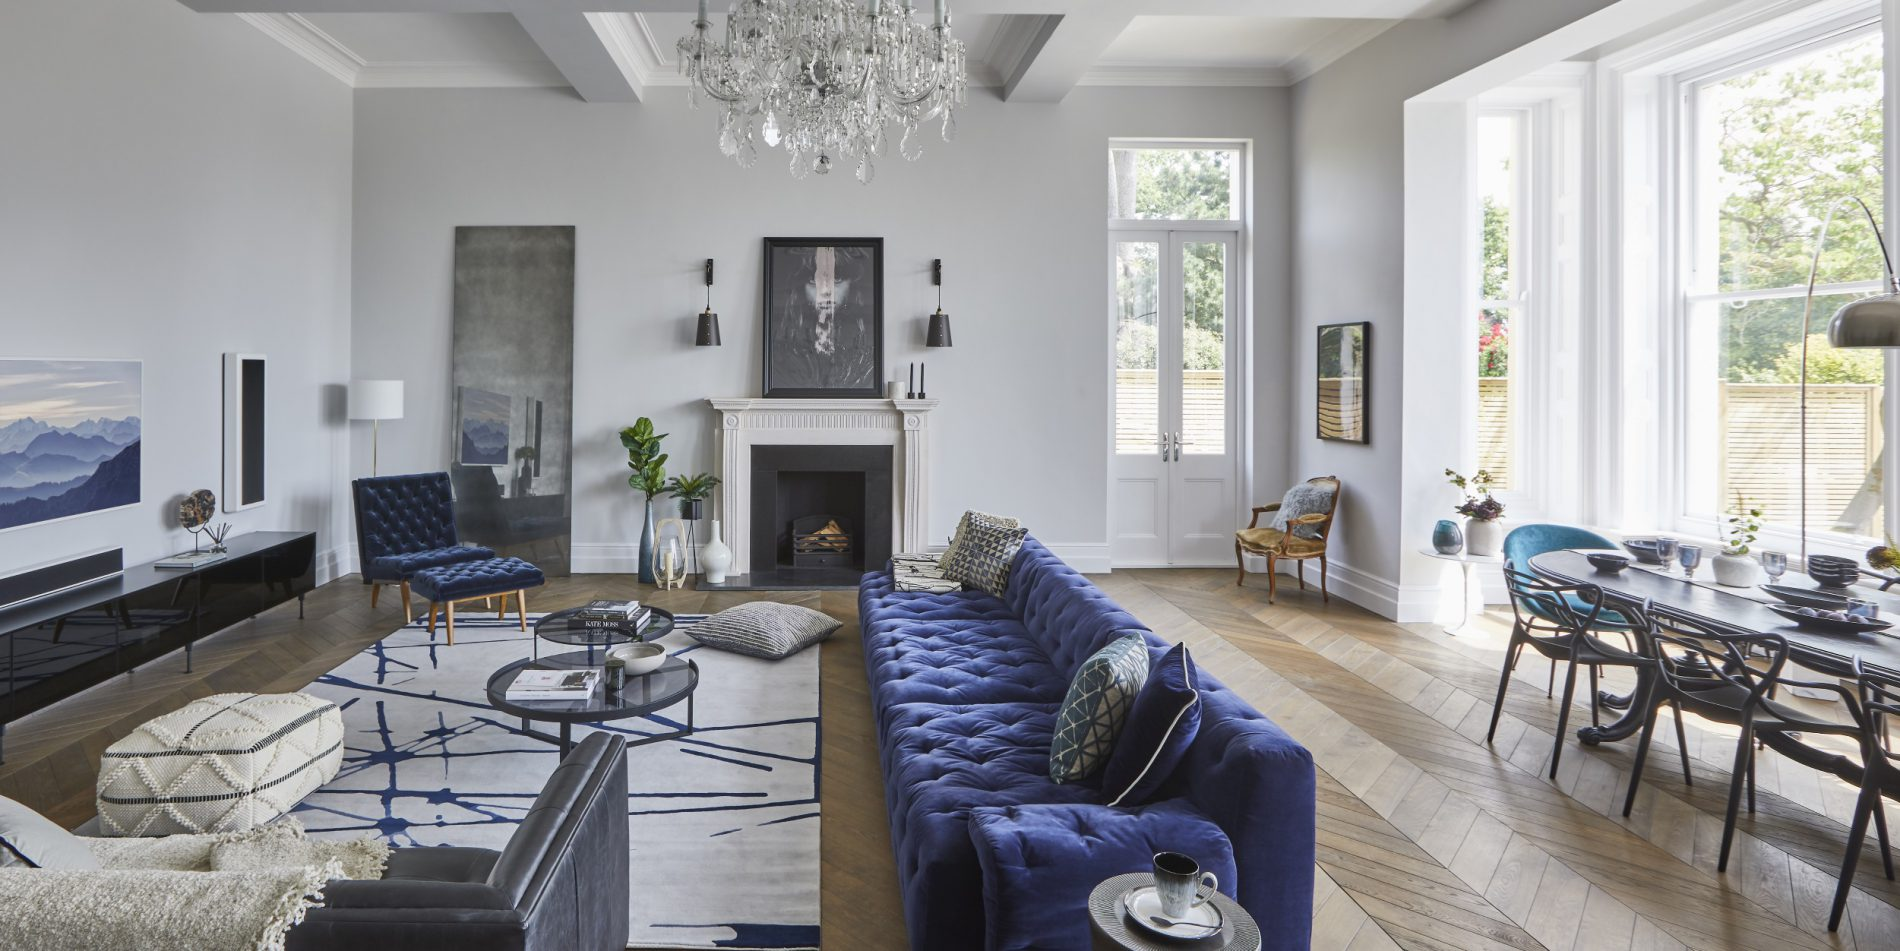 27 Curated British Interior Designing Blogs That You Need To Know About (2021)